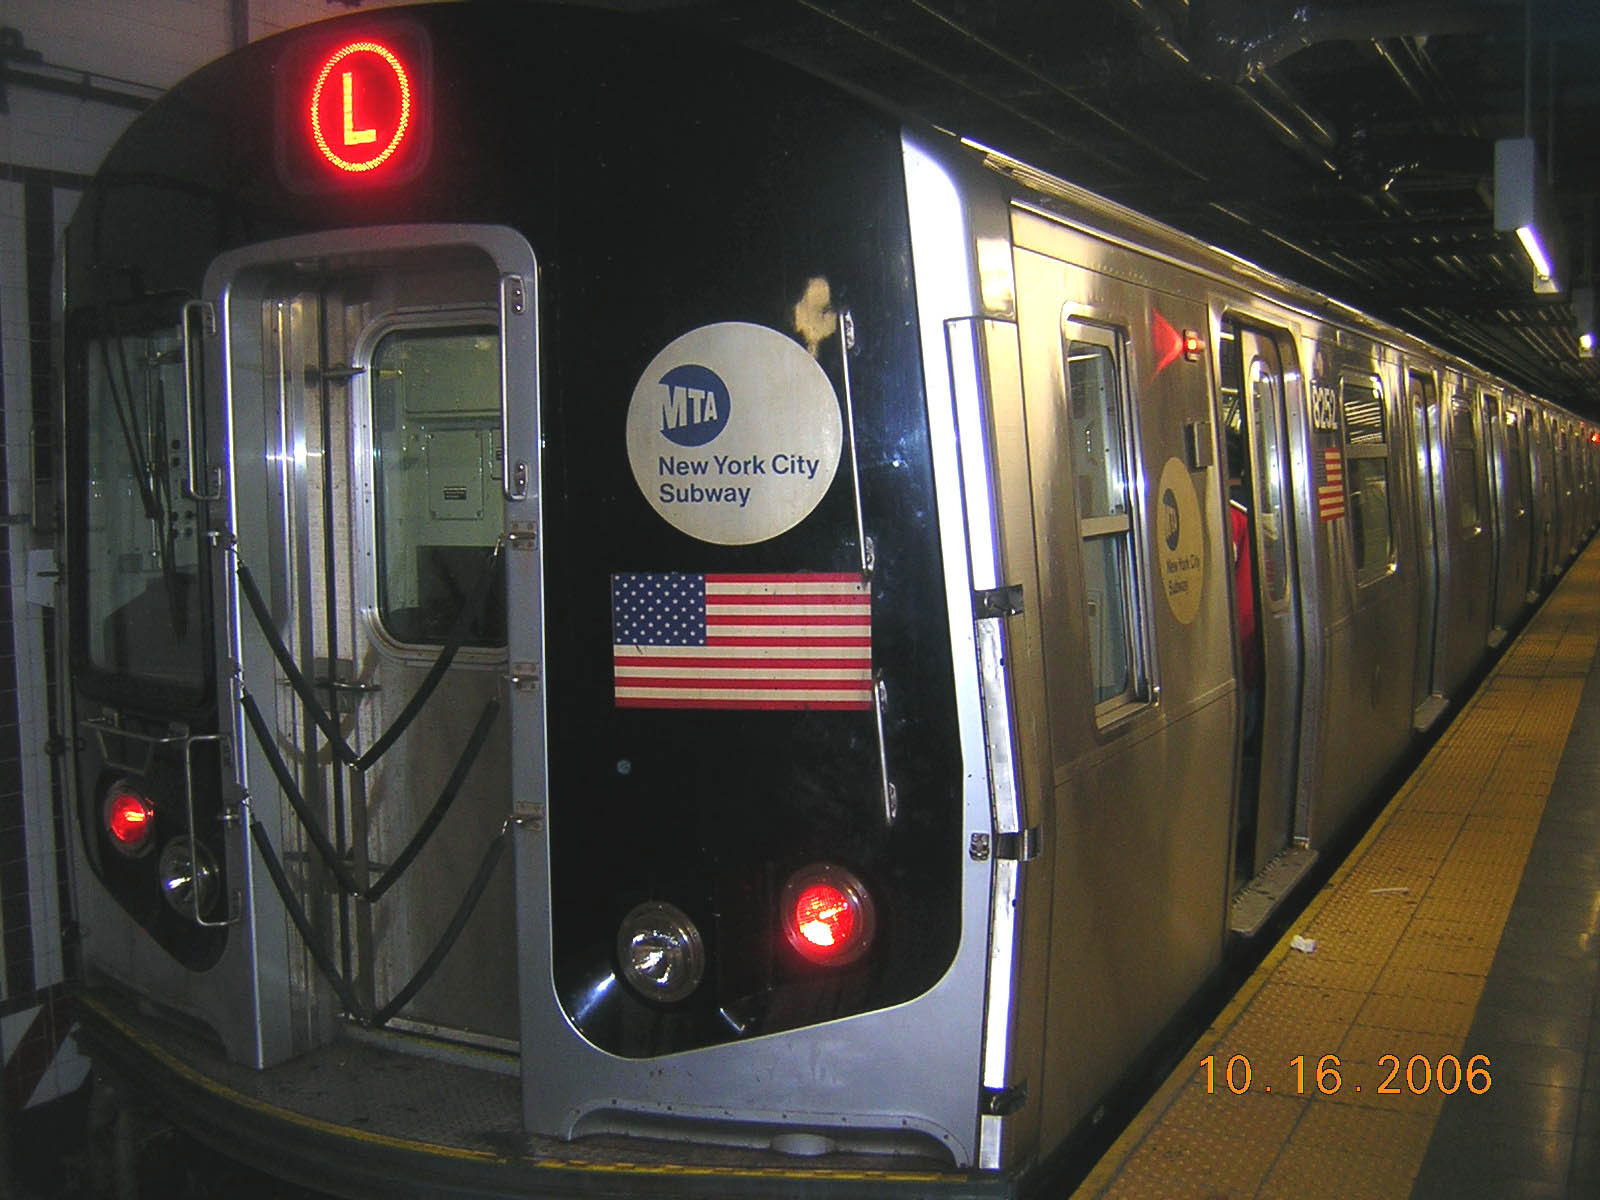 (223k, 1600x1200)<br><b>Country:</b> United States<br><b>City:</b> New York<br><b>System:</b> New York City Transit<br><b>Line:</b> BMT Canarsie Line<br><b>Location:</b> 8th Avenue <br><b>Route:</b> L<br><b>Car:</b> R-143 (Kawasaki, 2001-2002) 8252 <br><b>Photo by:</b> Robert Mencher<br><b>Date:</b> 10/16/2006<br><b>Viewed (this week/total):</b> 1 / 1569